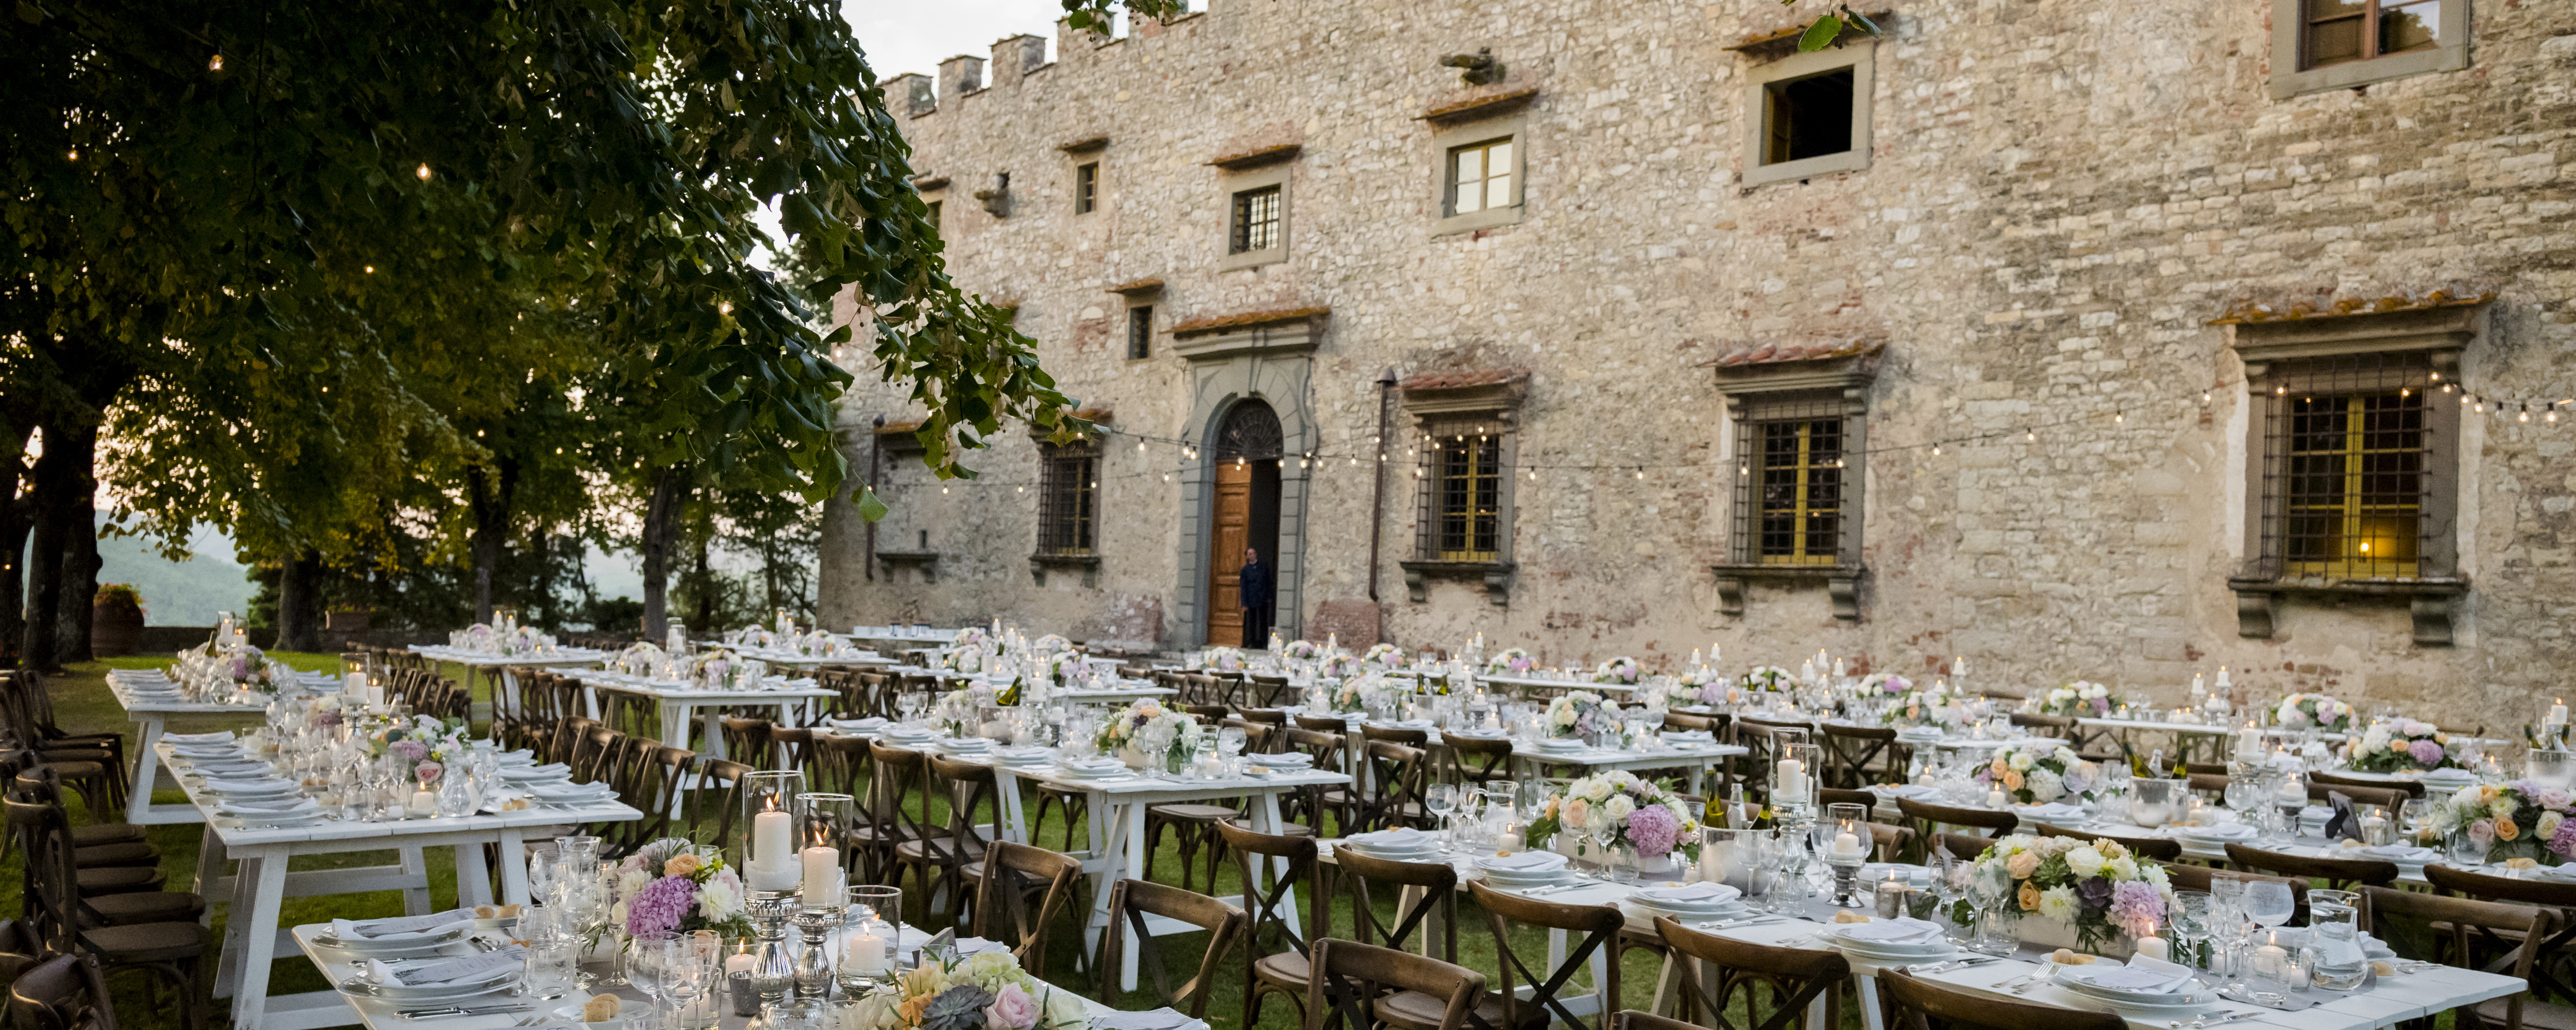 Countryside Wedding Venues